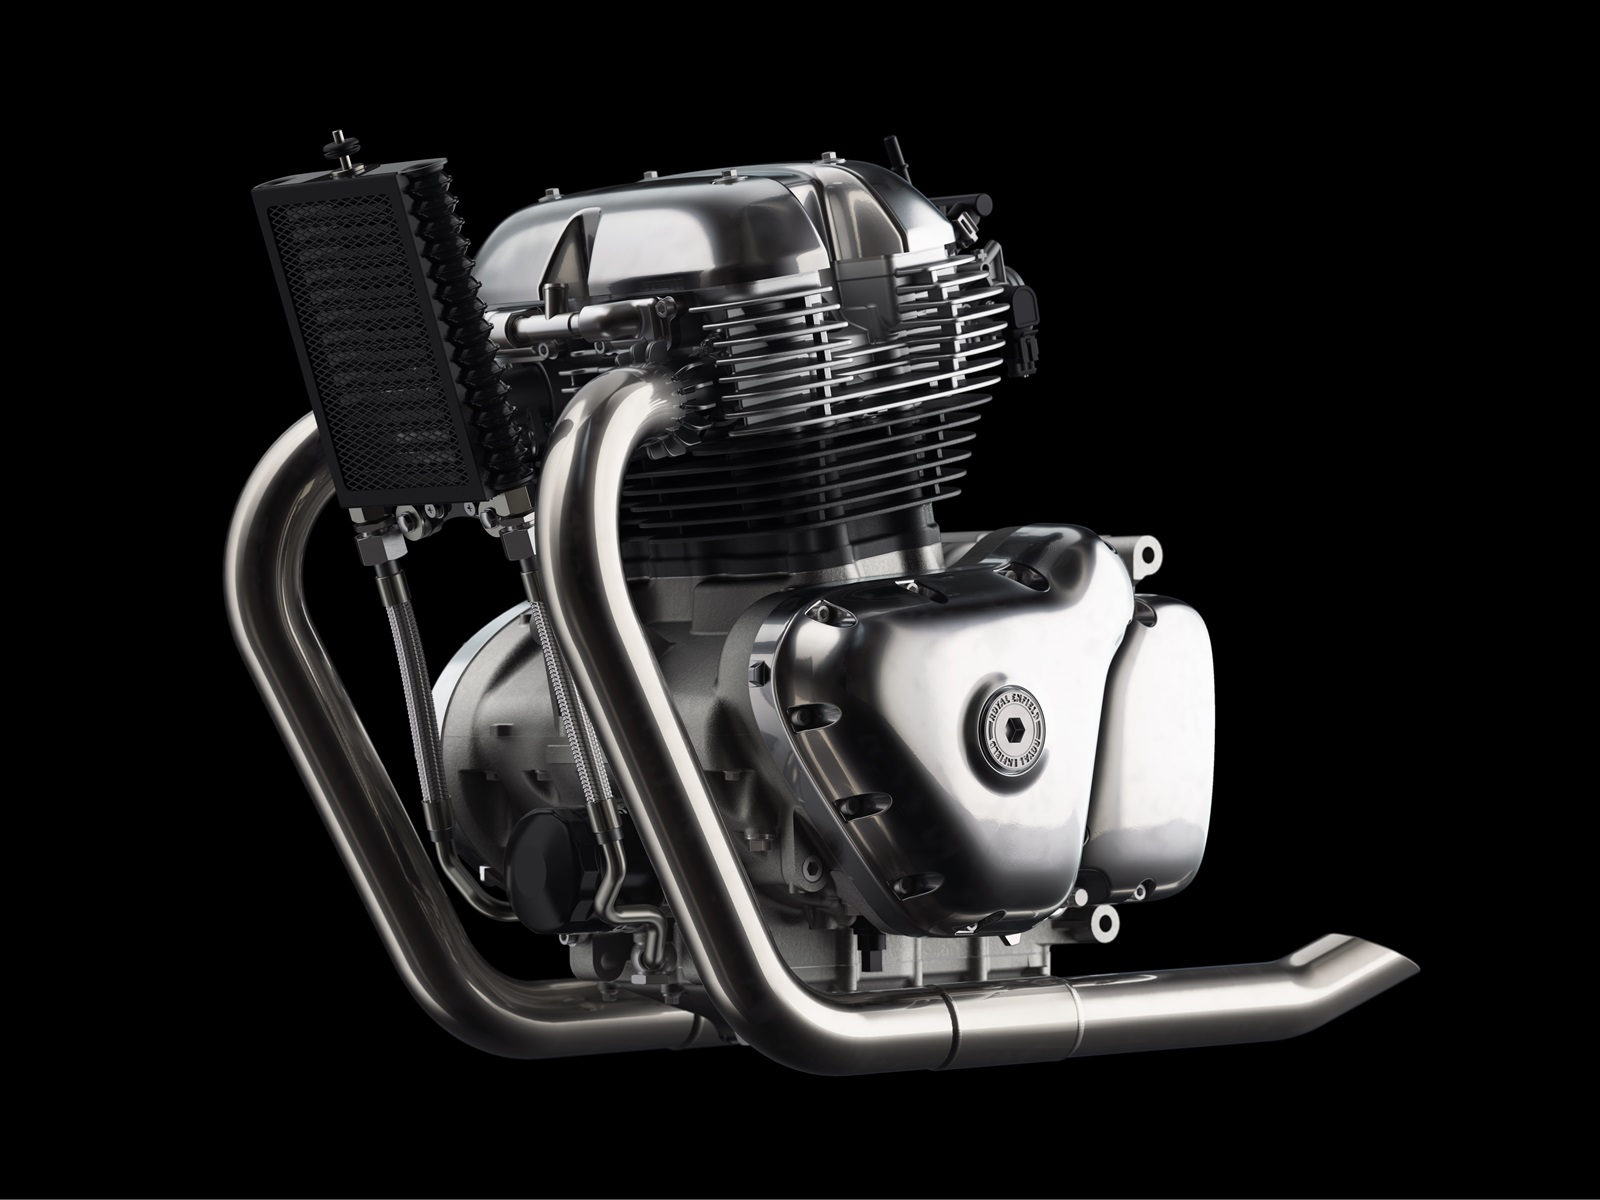 Royal Enfield 650cc Twin Engine + Ghosted Internals LHS view